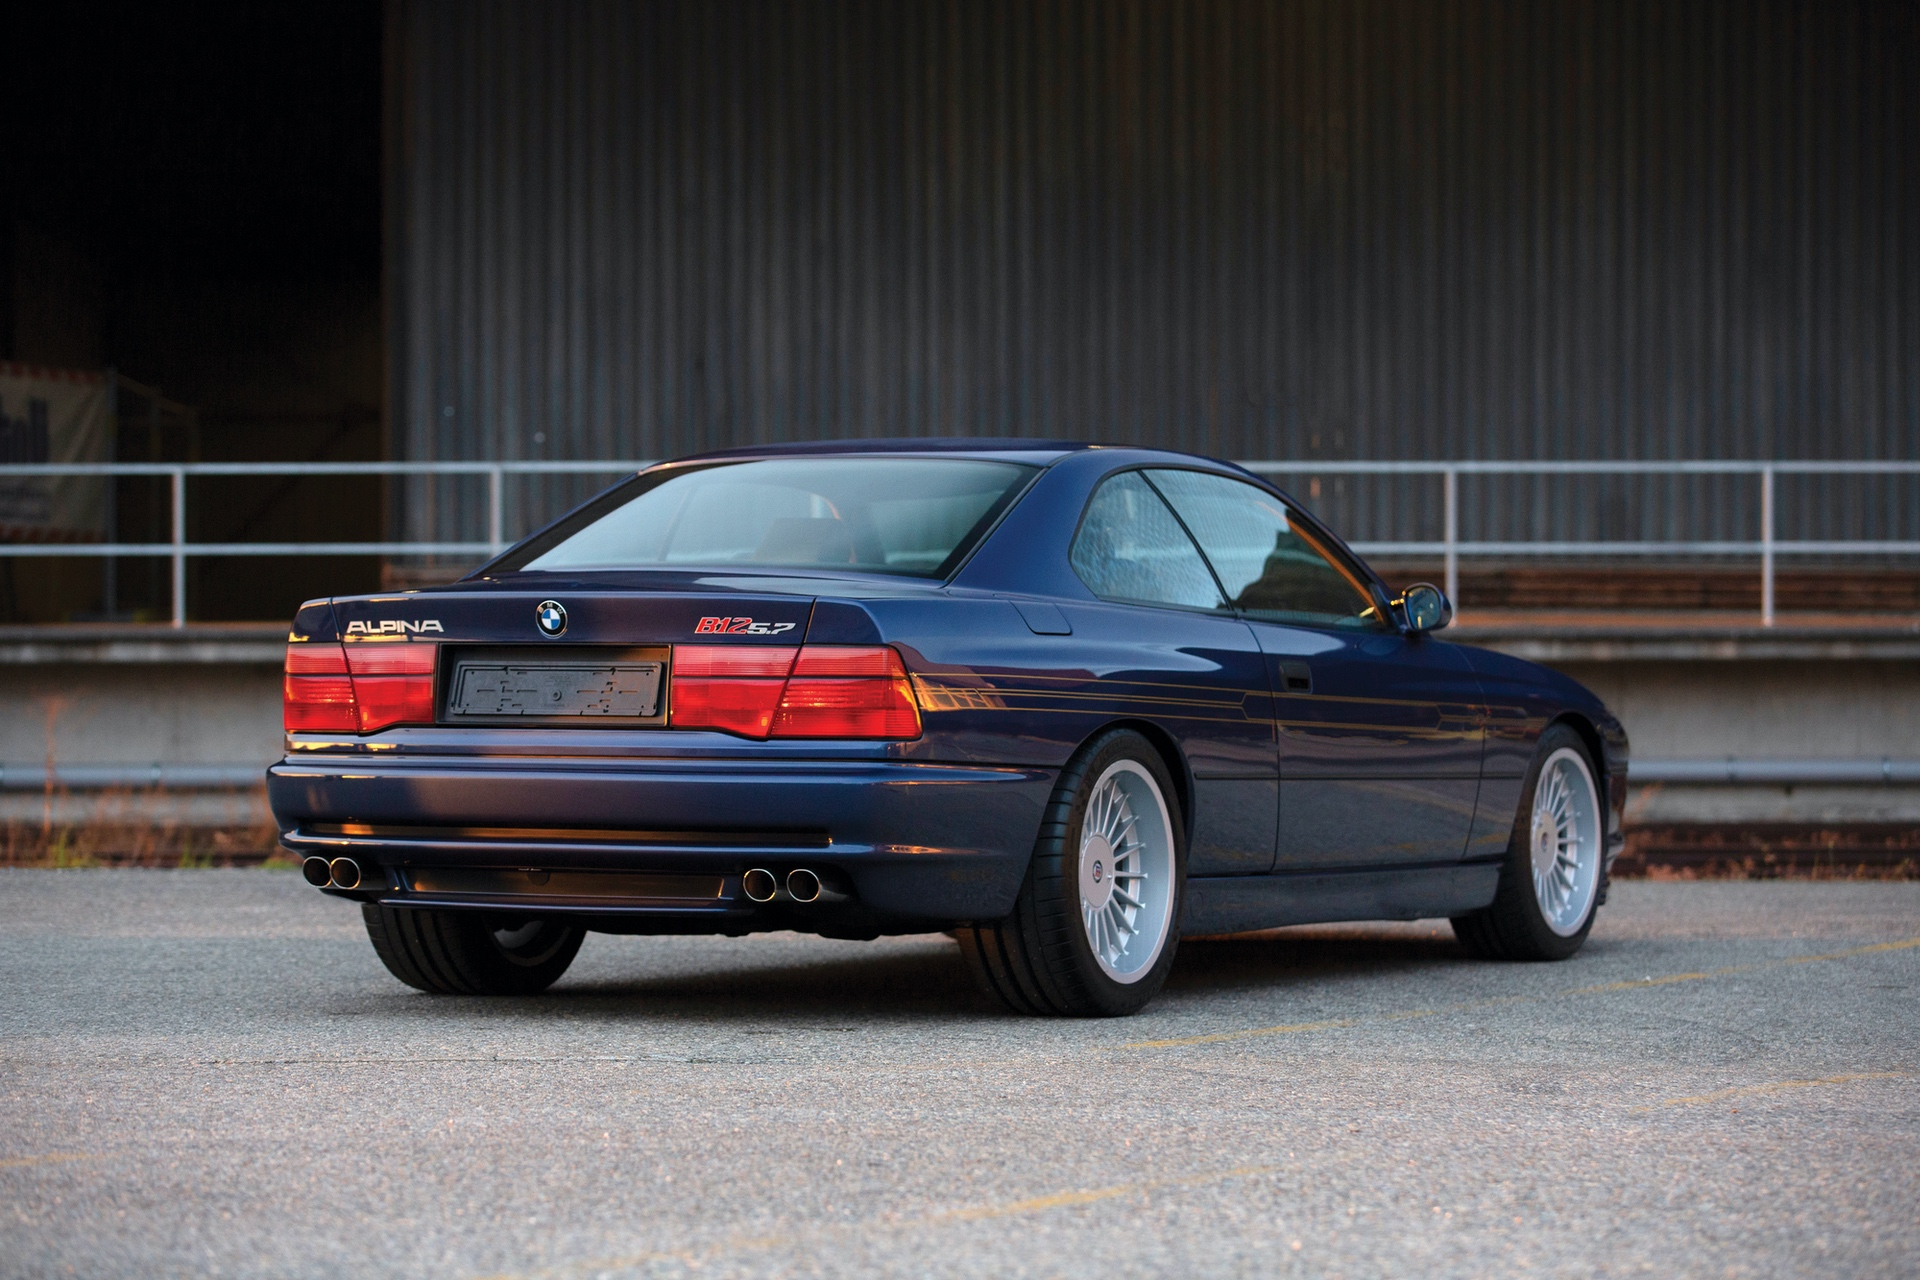 1993-BMW-Alpina-B12-5-7-Coupe-_1